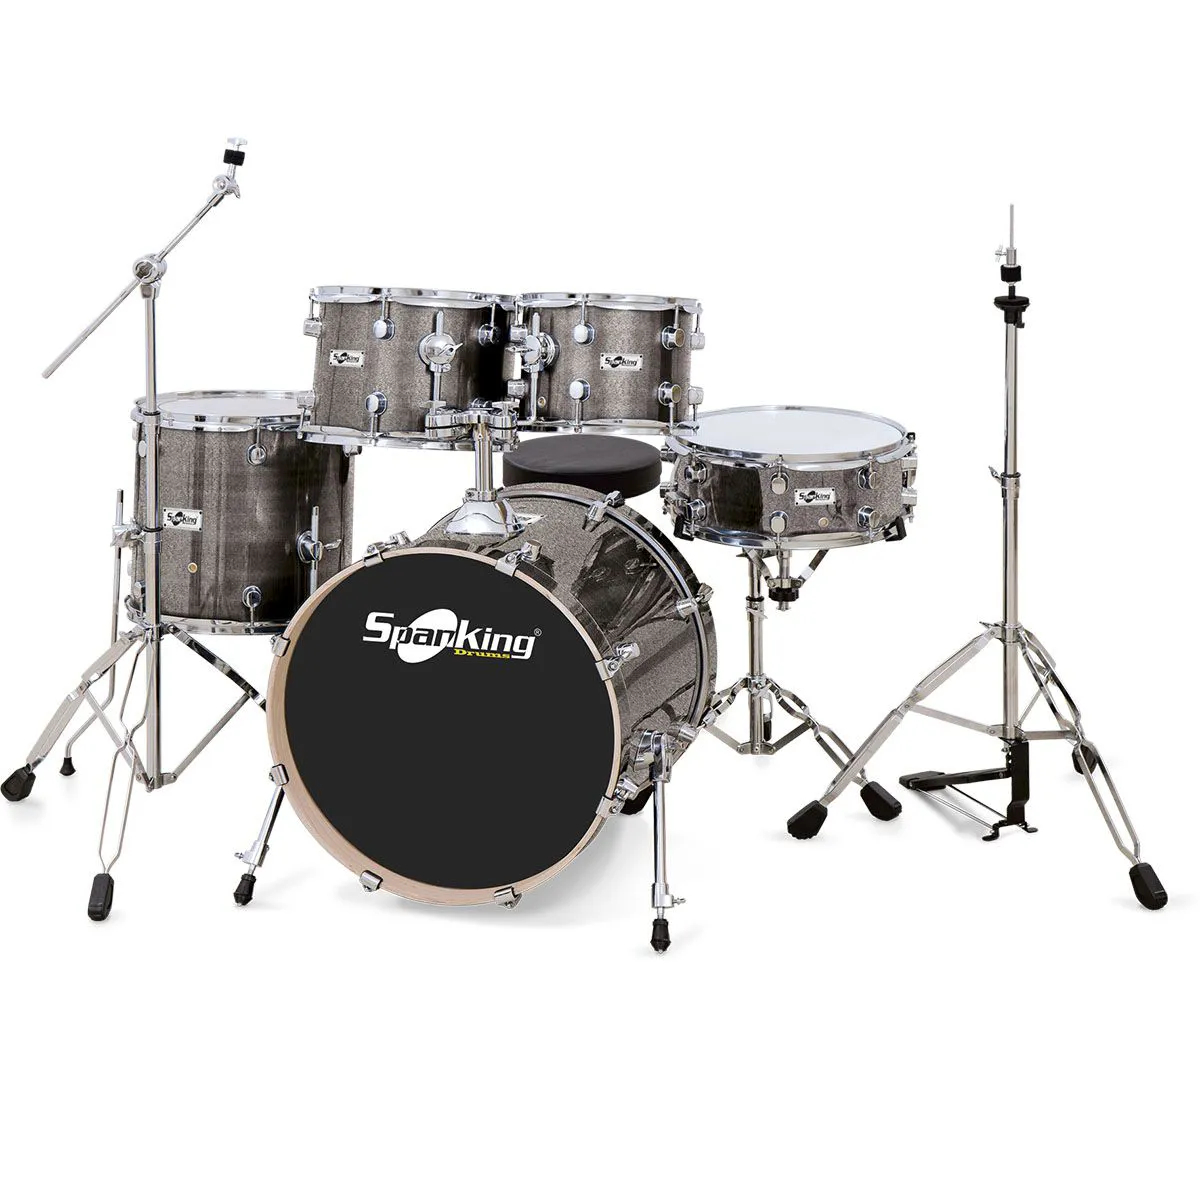 Bateria Acústica Spanking Chrome Light Sparkle 22